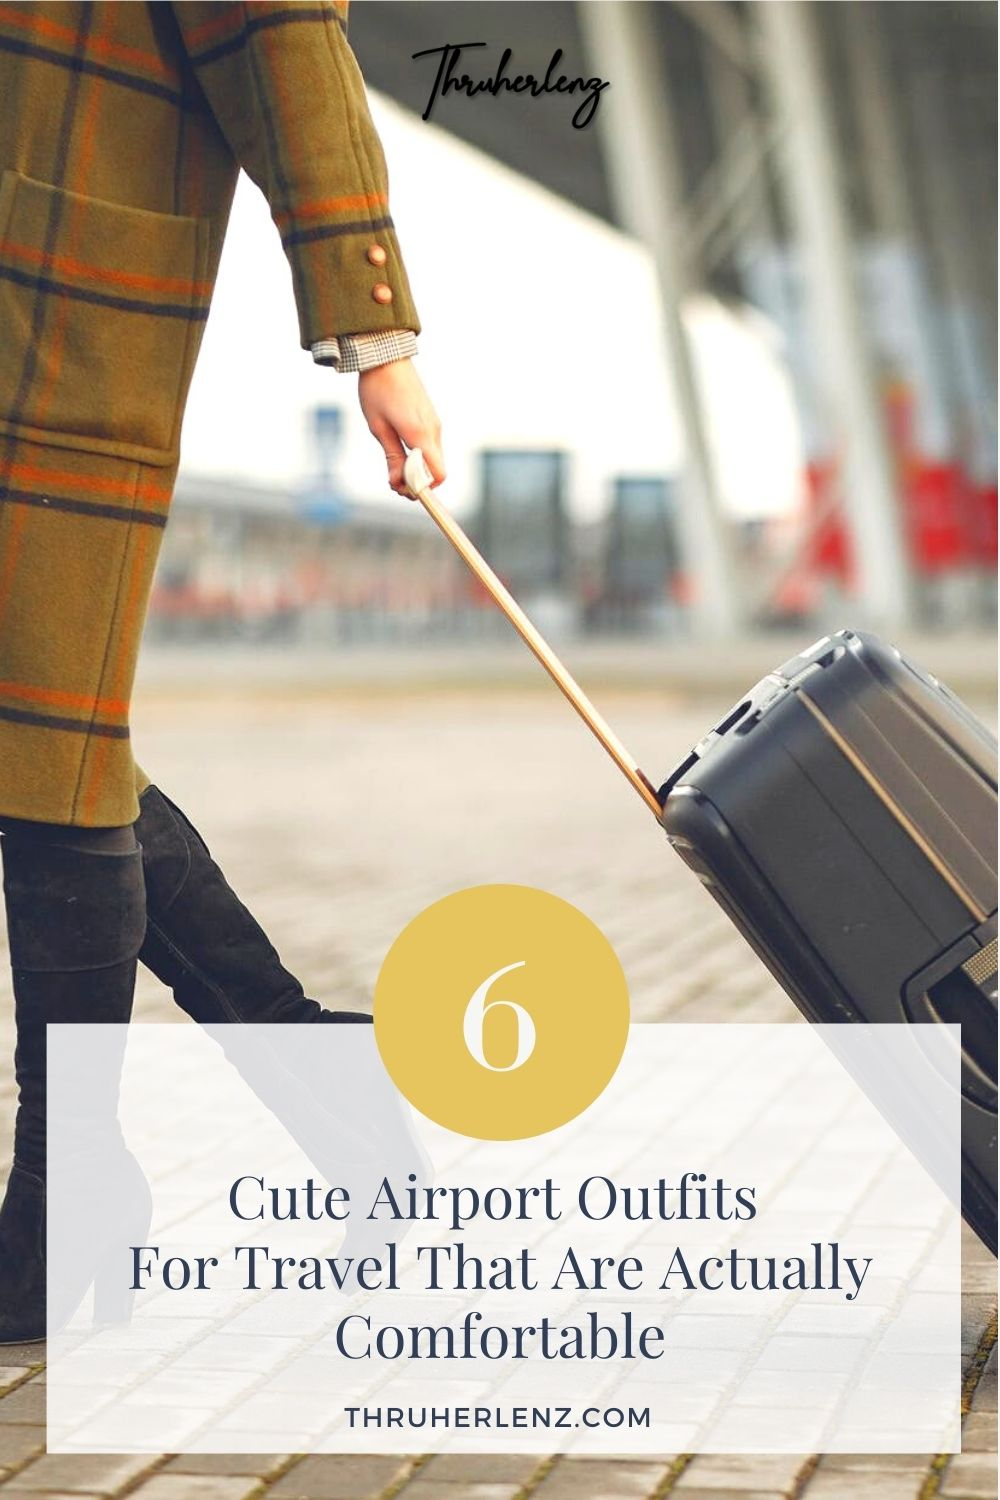 6 Cute Airport Outfits For Travel That Are Actually Comfortable